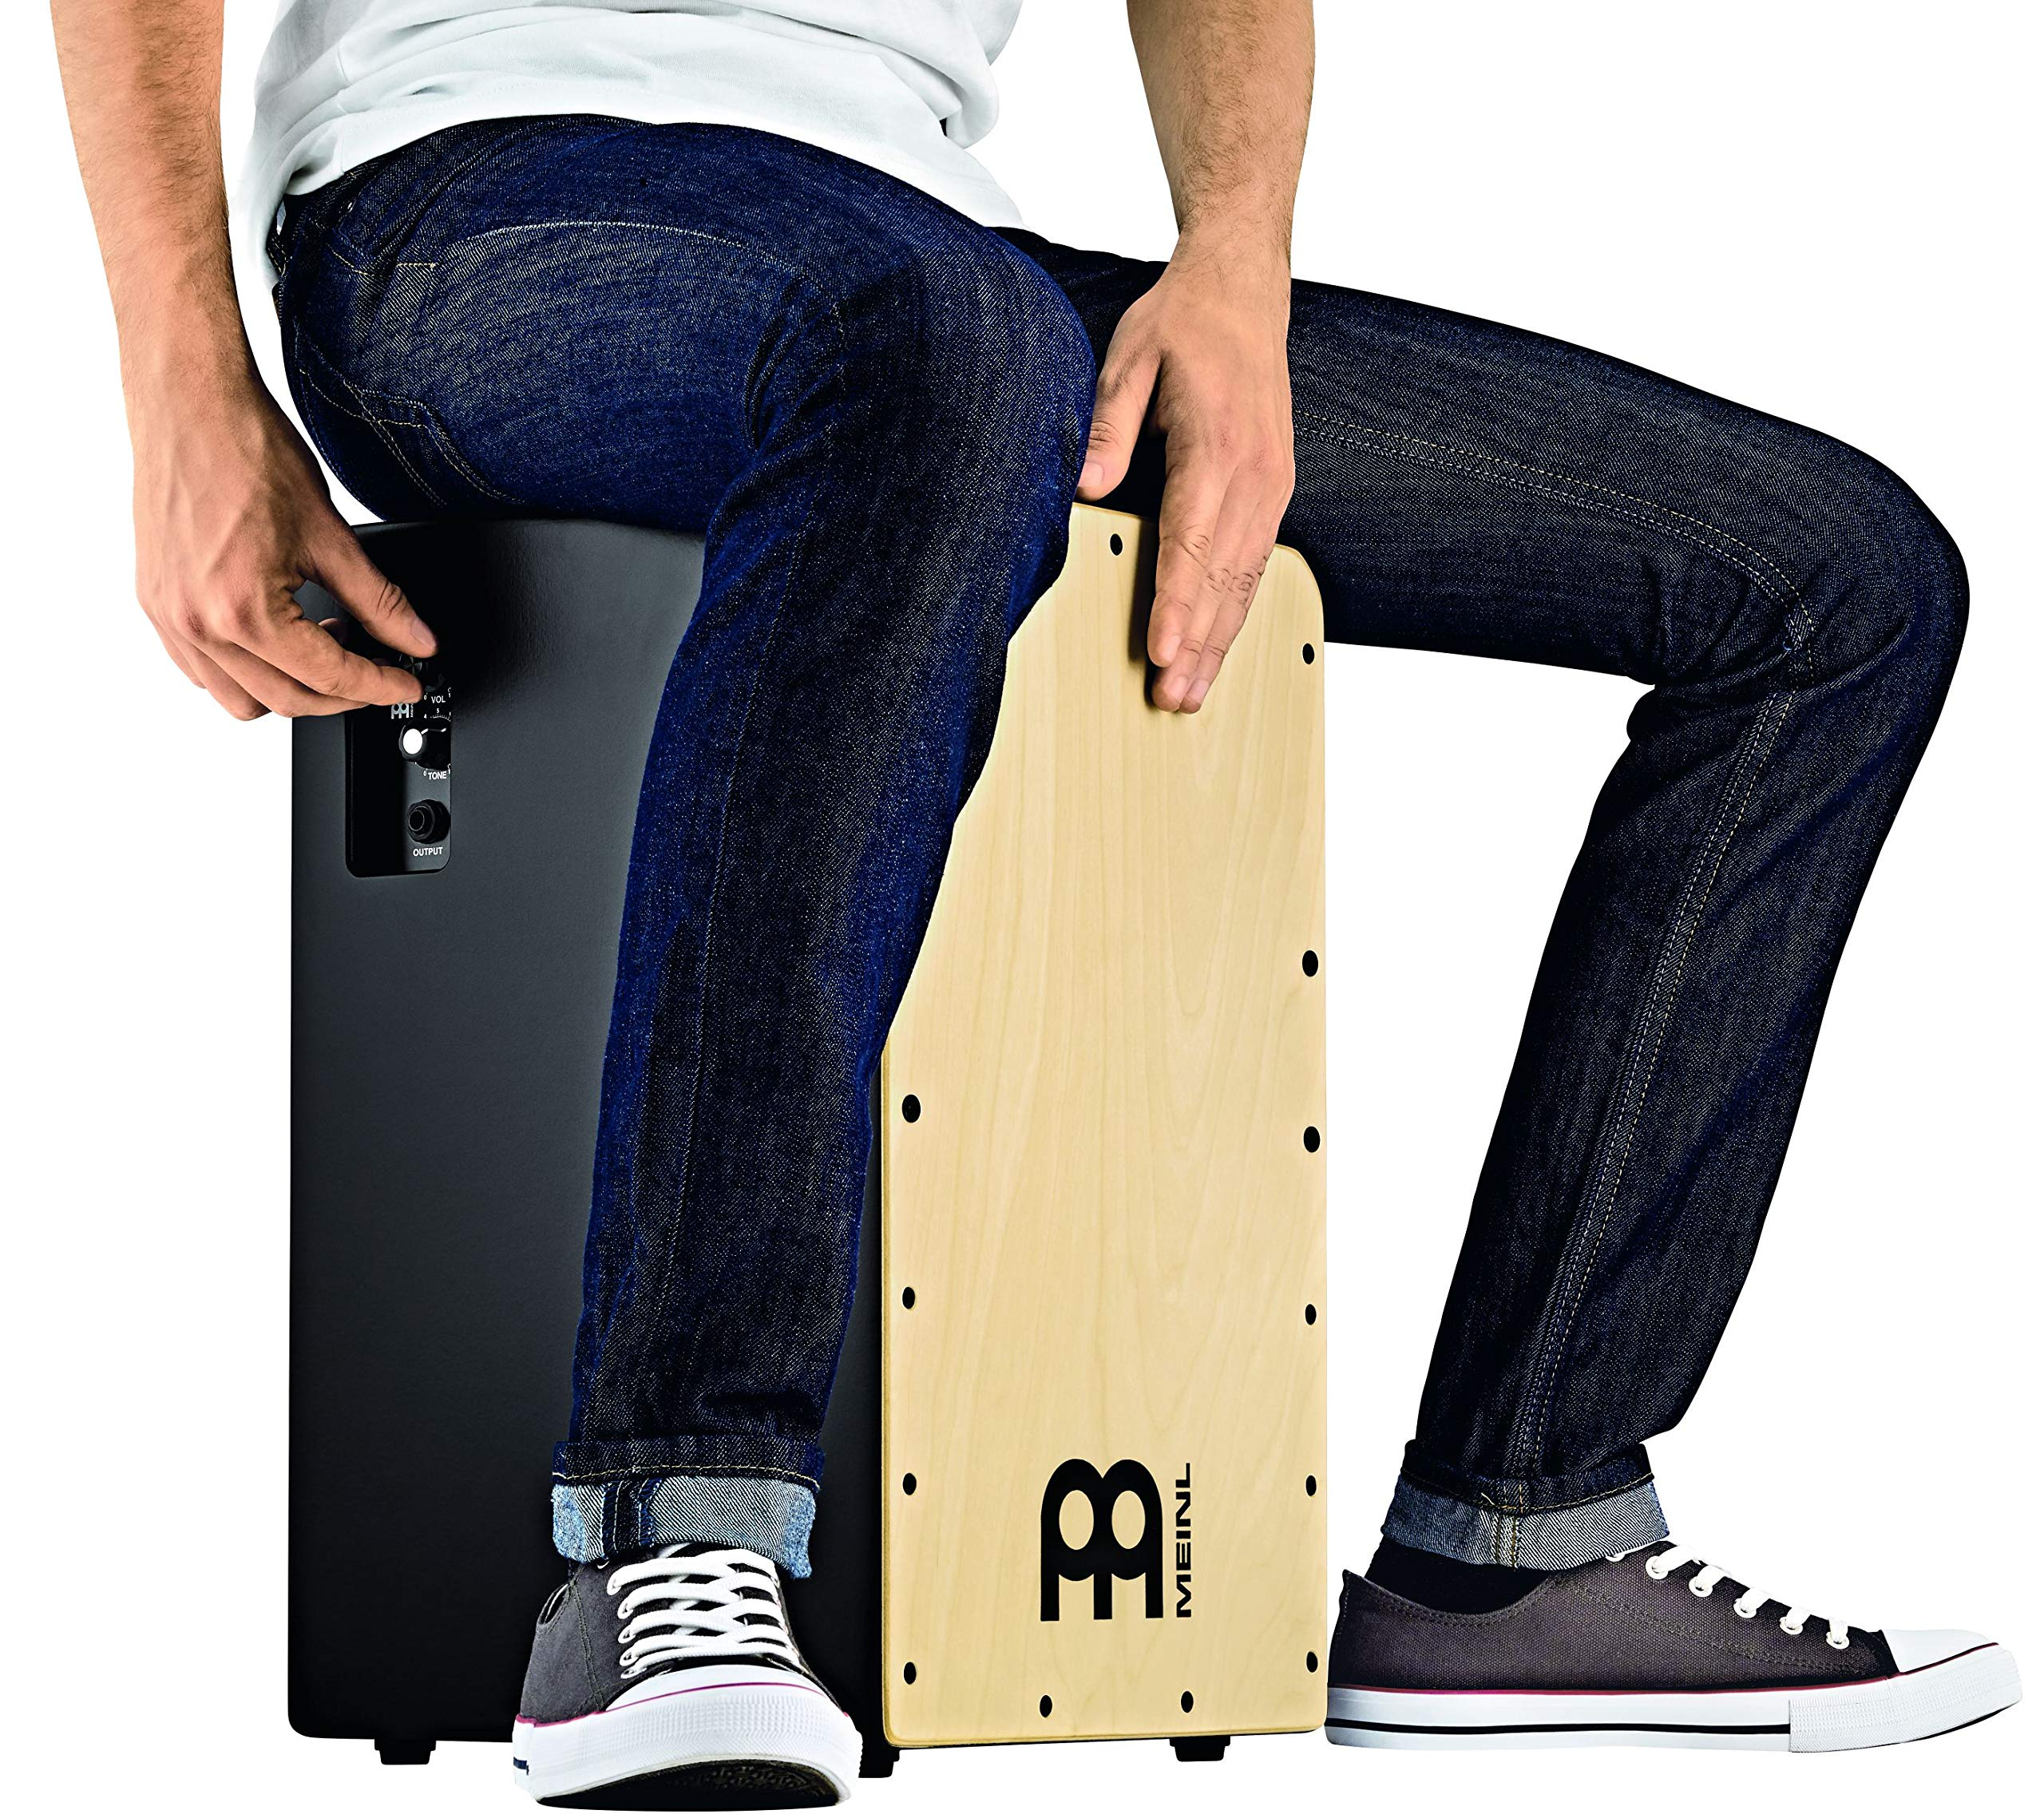 Meinl Pickup Cajon Box Drum with Internal Snares - MADE IN EUROPE - Baltic Birch Wood, Snarecraft Series, 2-YEAR WARRANTY (PSC100B) by Meinl Percussion (Image #7)